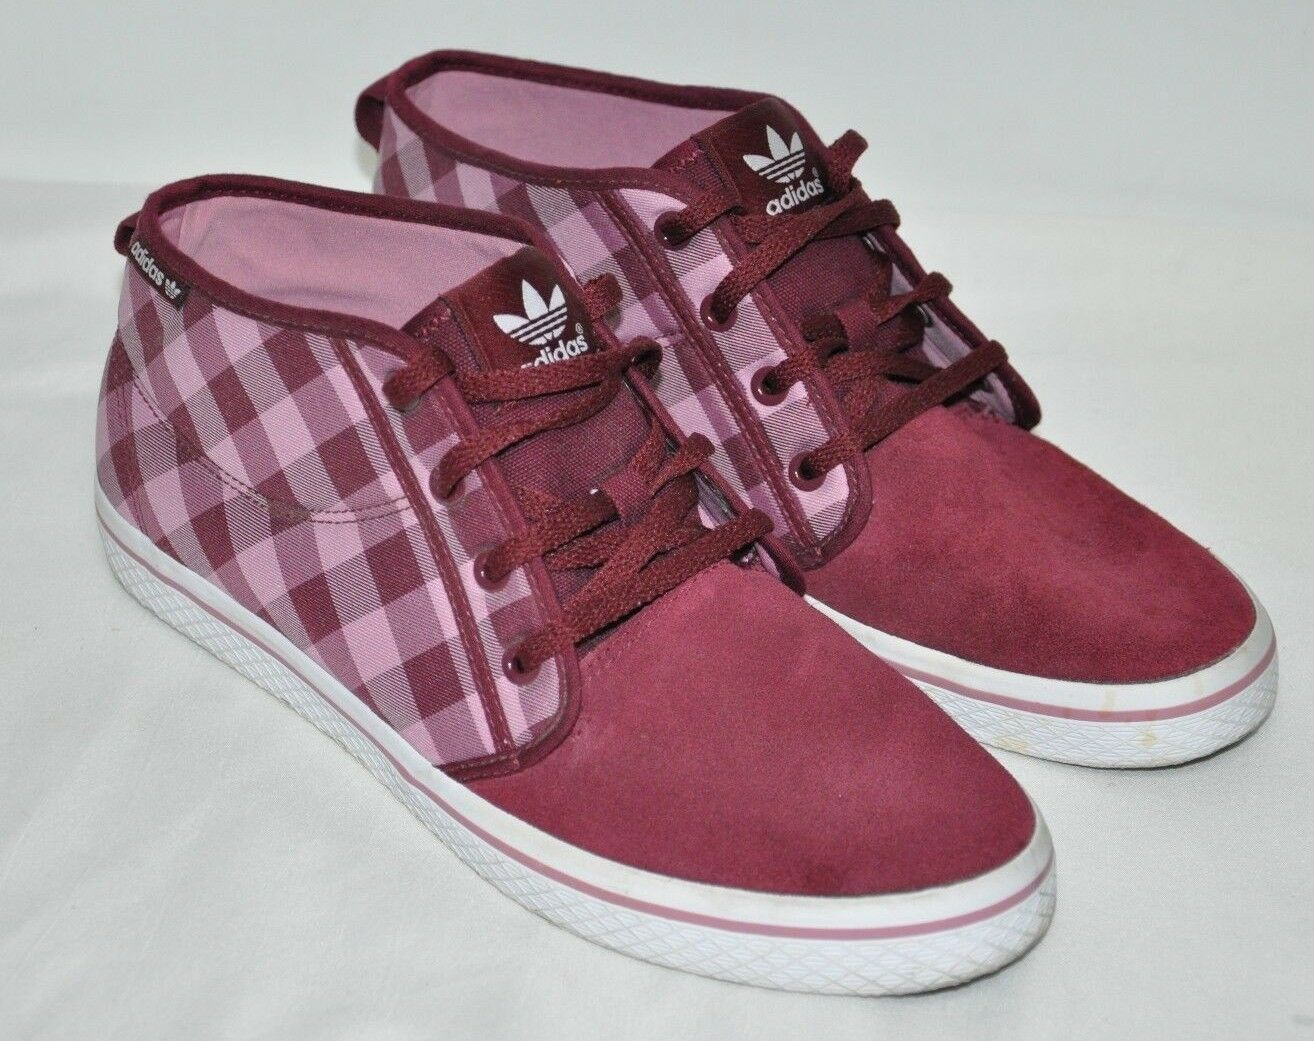 Womens Adidas Purple Plaid Suede Tennis Shoes Sneakers 1/2 Size 10 US 8 1/2 Sneakers UK 9ad3c3